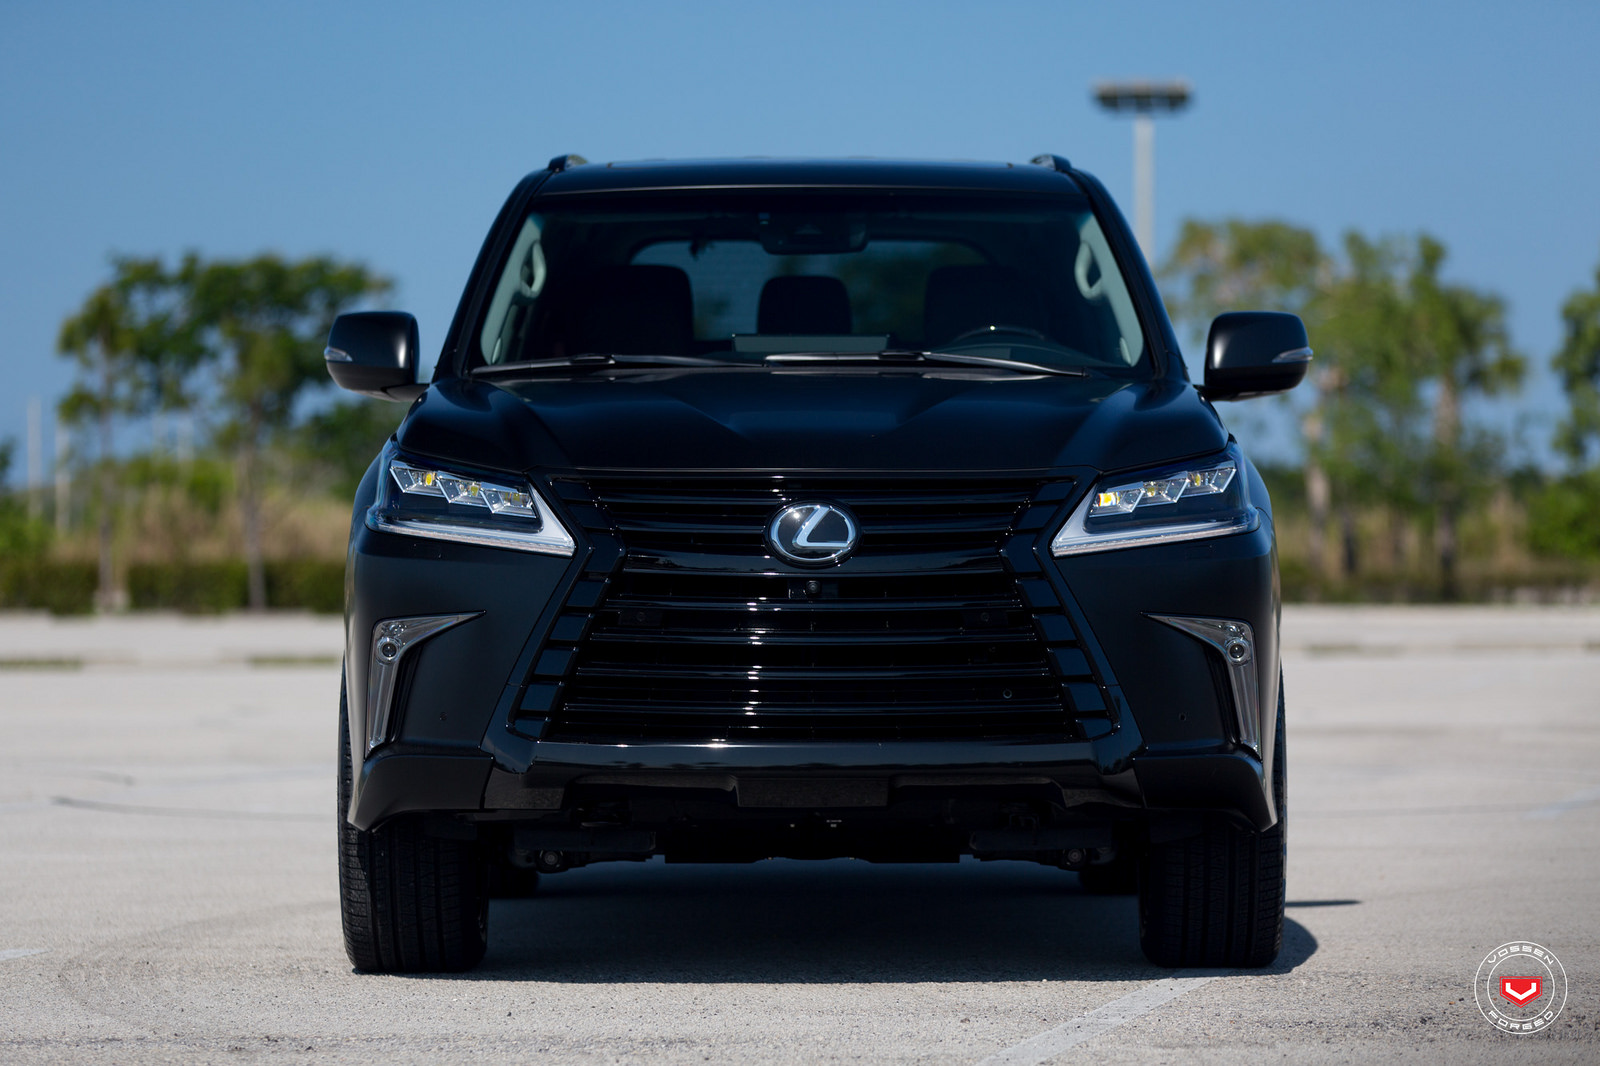 dr jekell vs mr hyde murdered out lexus lx 570 takes sinister to a new level autospies auto news. Black Bedroom Furniture Sets. Home Design Ideas